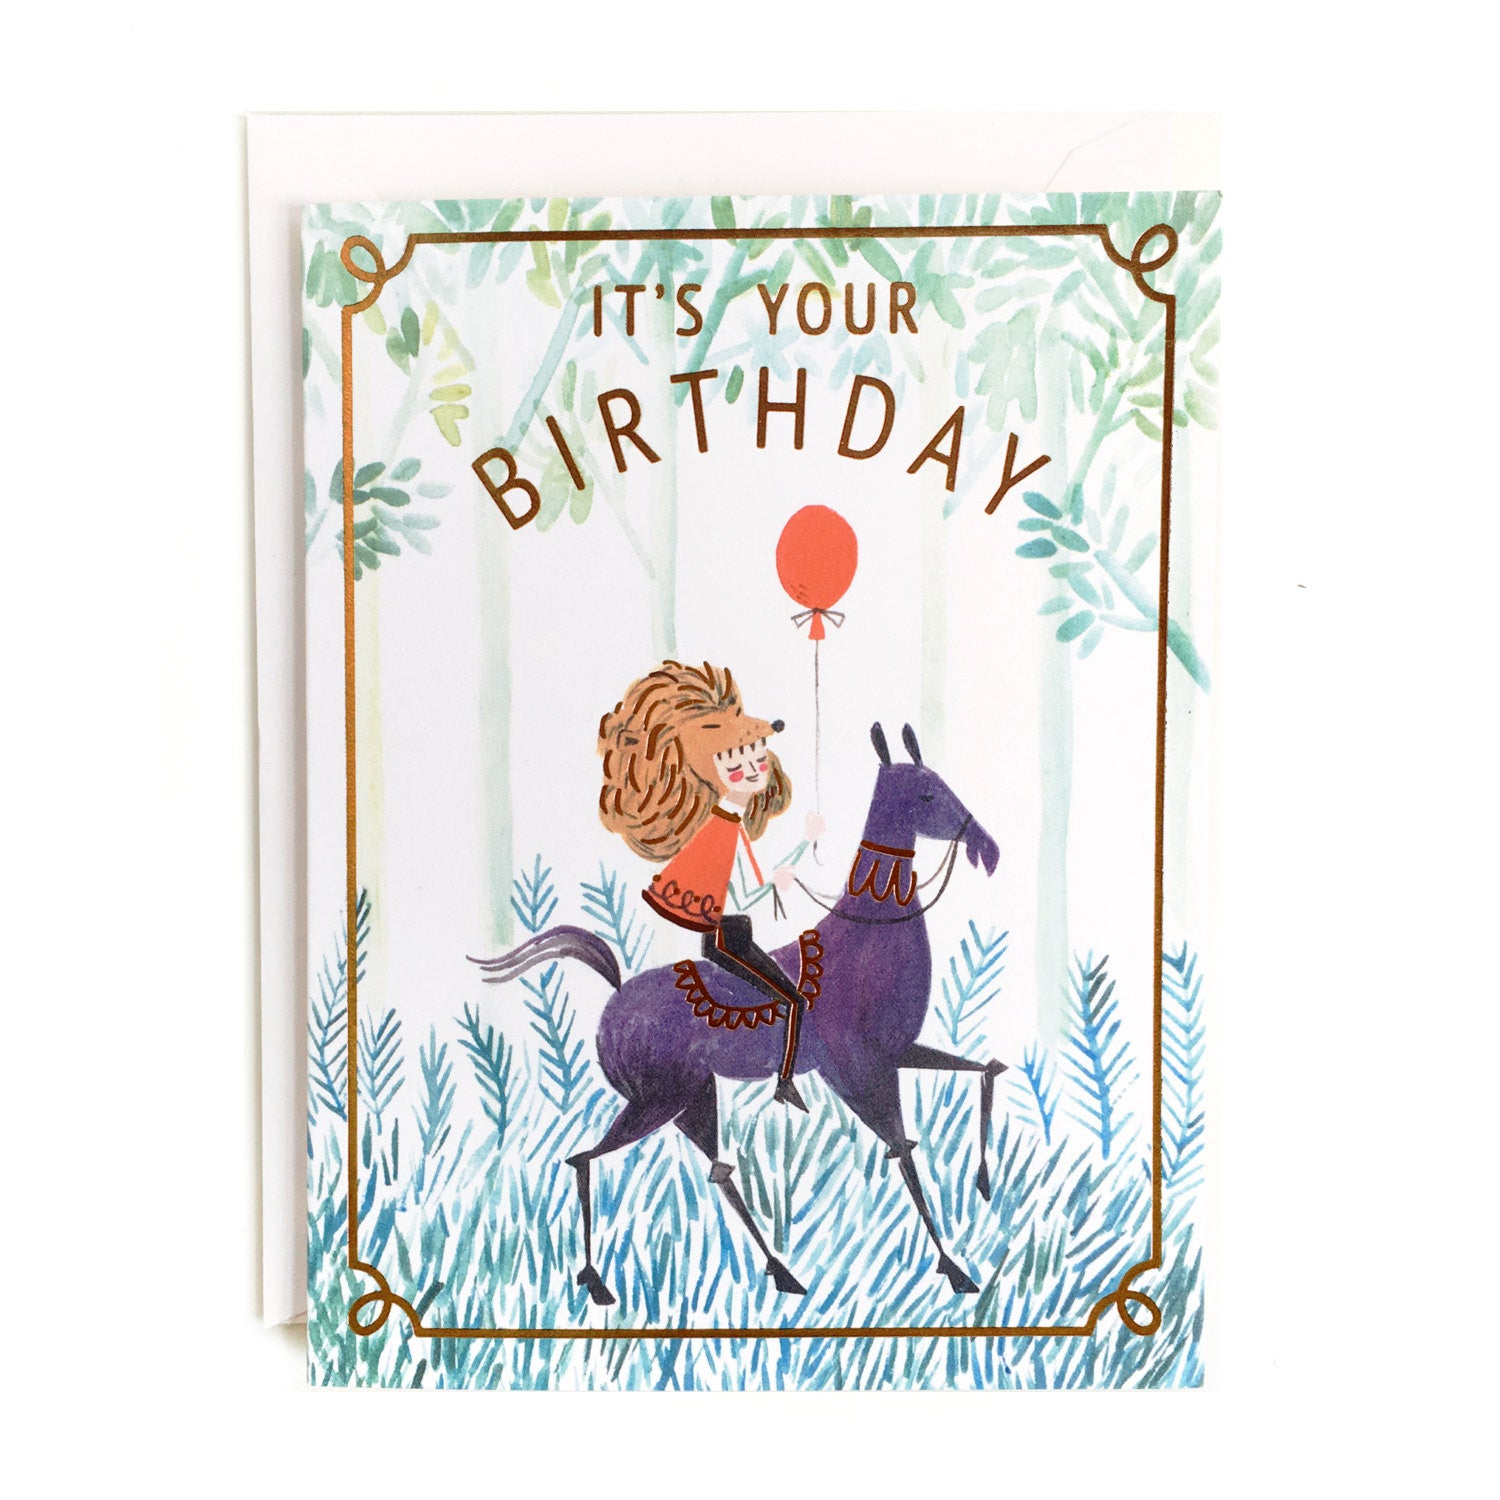 It's Your Birthday Single Card